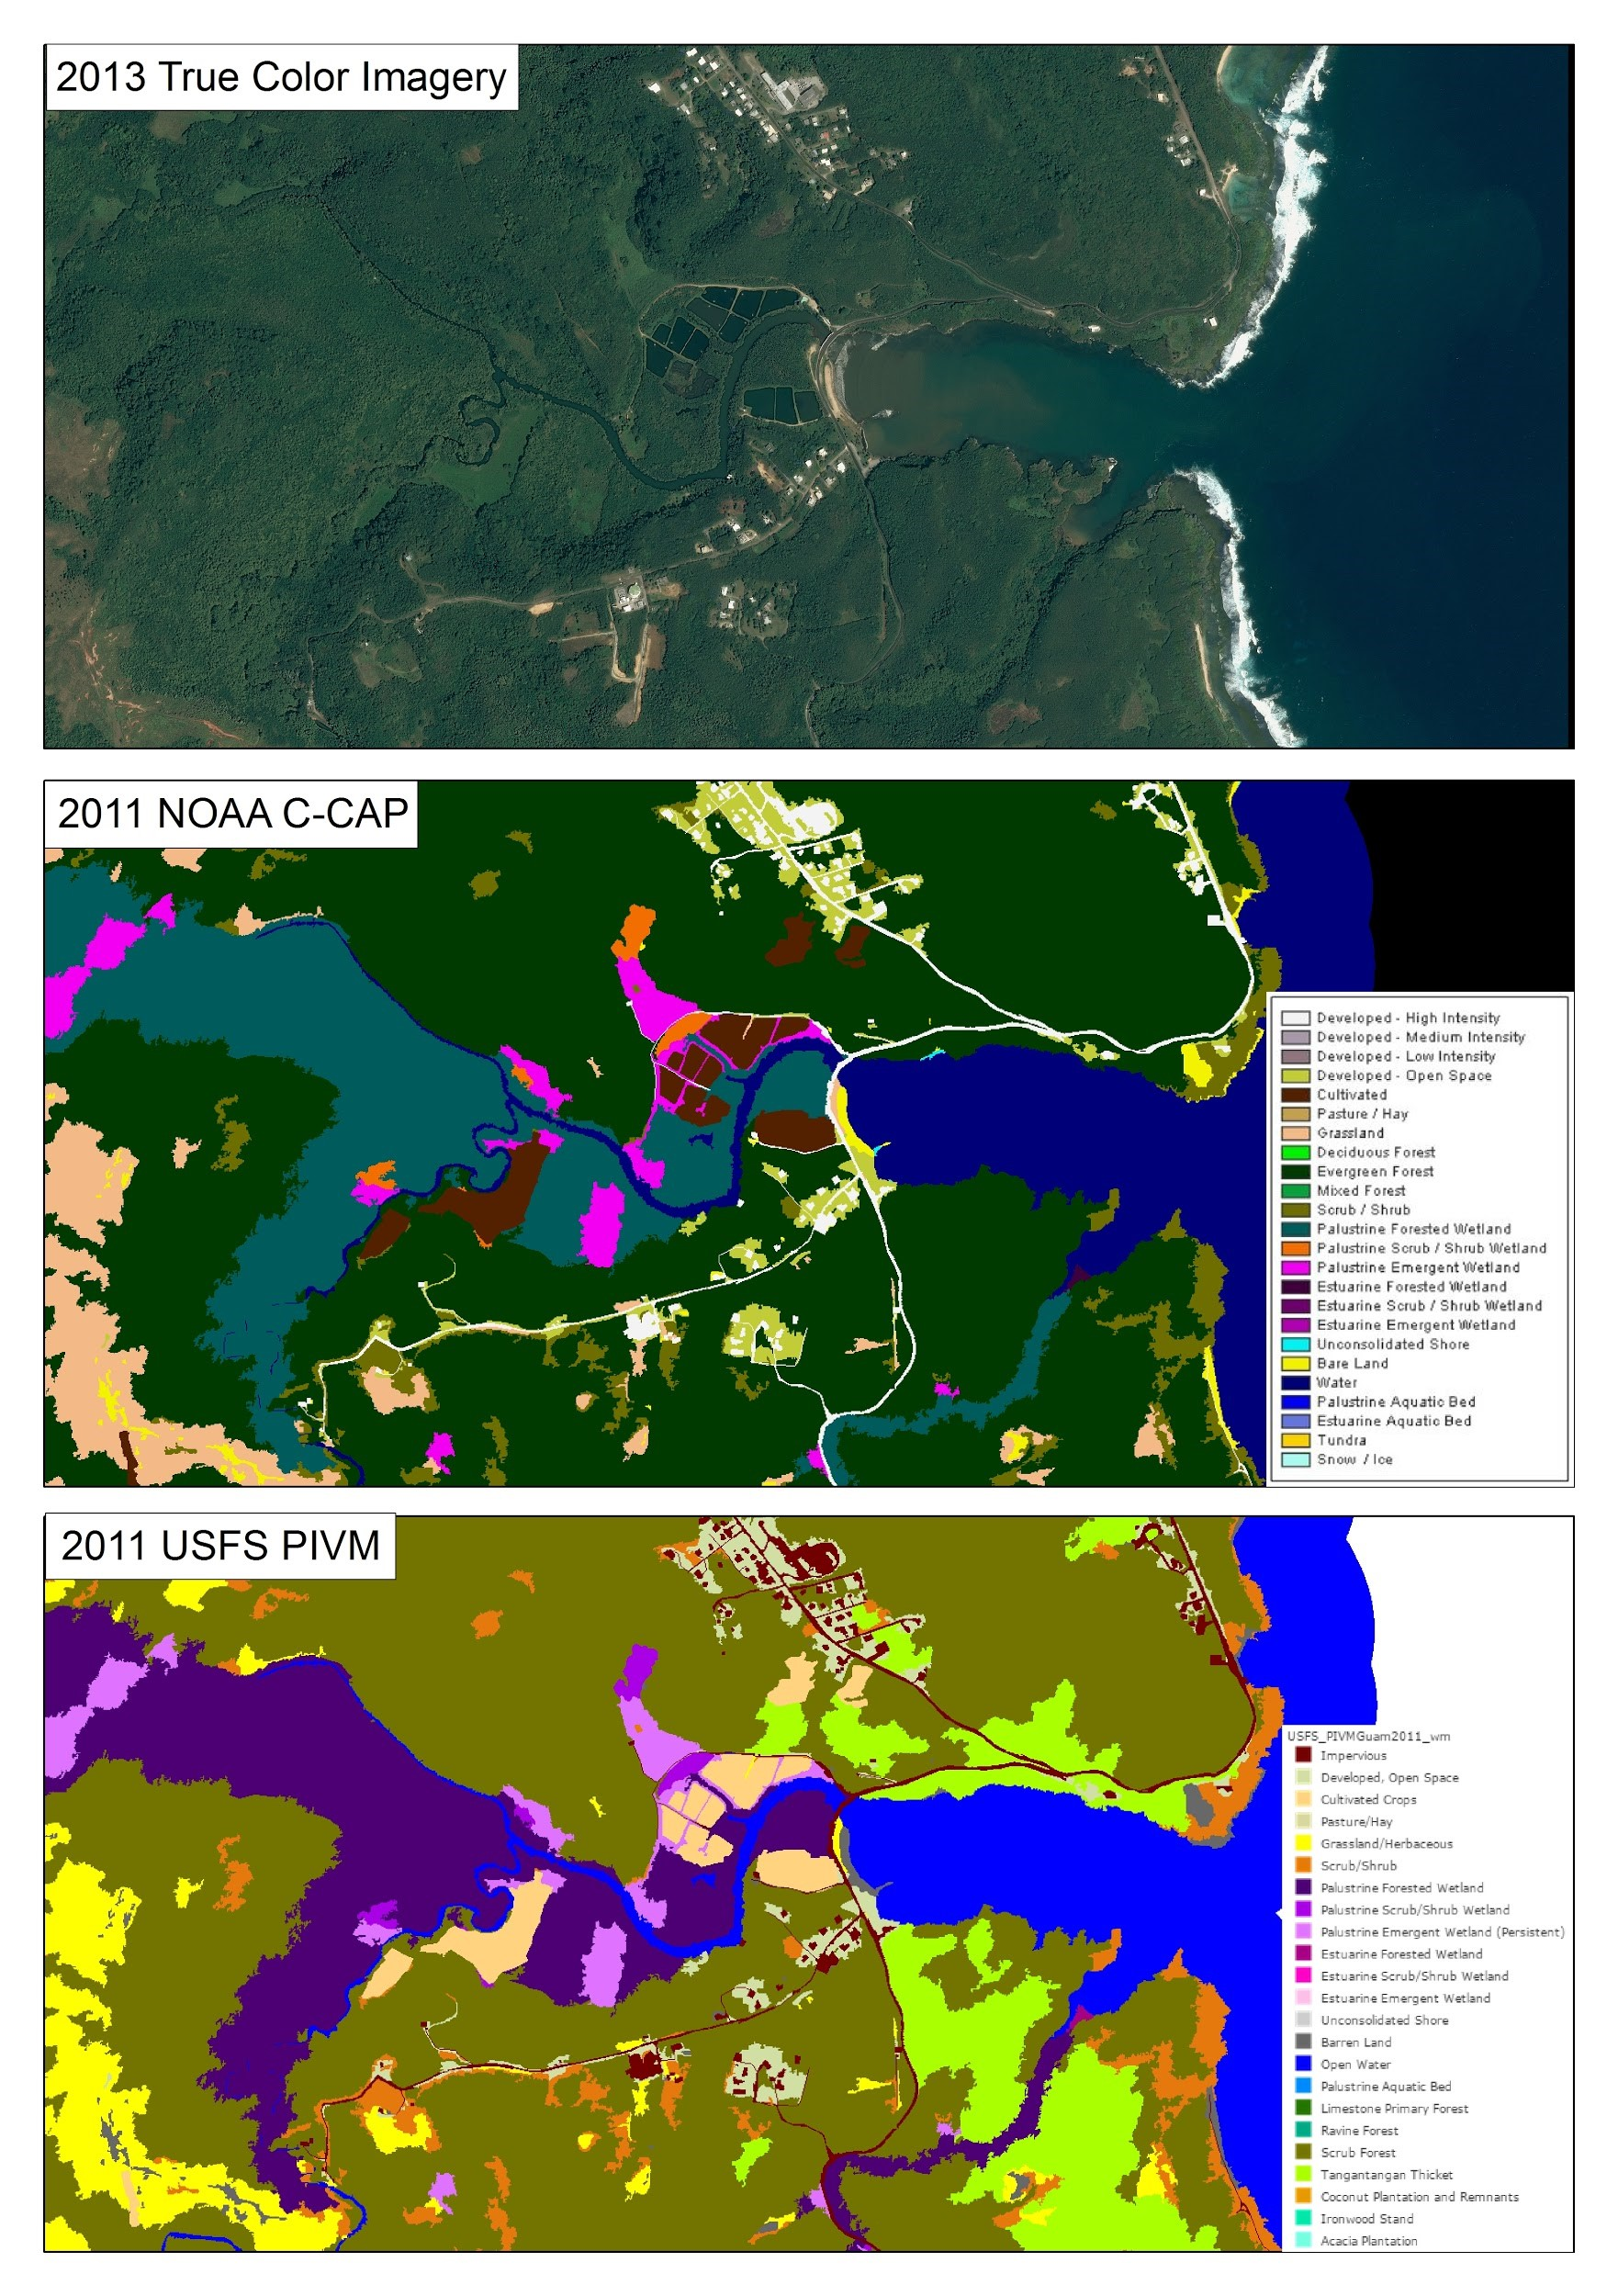 Aerial imagery and C-CAP High-Resolution Land Cover of Talofofo Bay, Guam